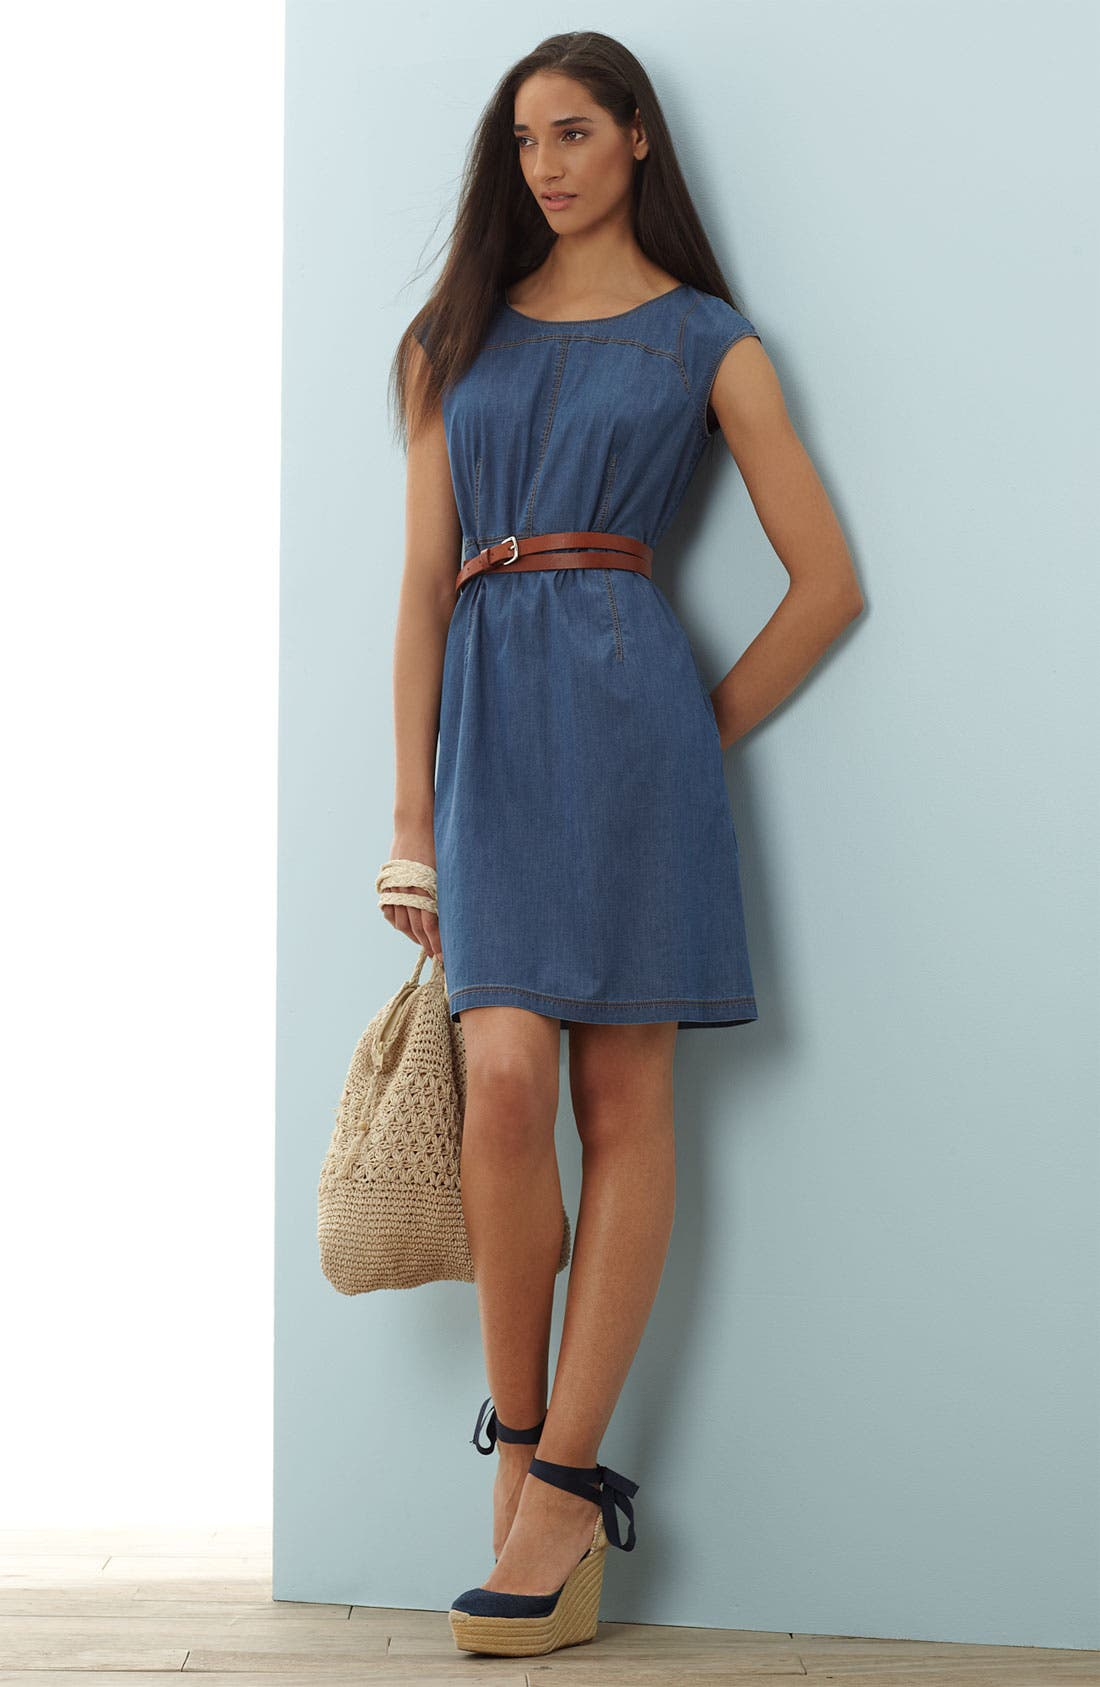 Main Image - Lafayette 148 New York Denim Dress & Belt